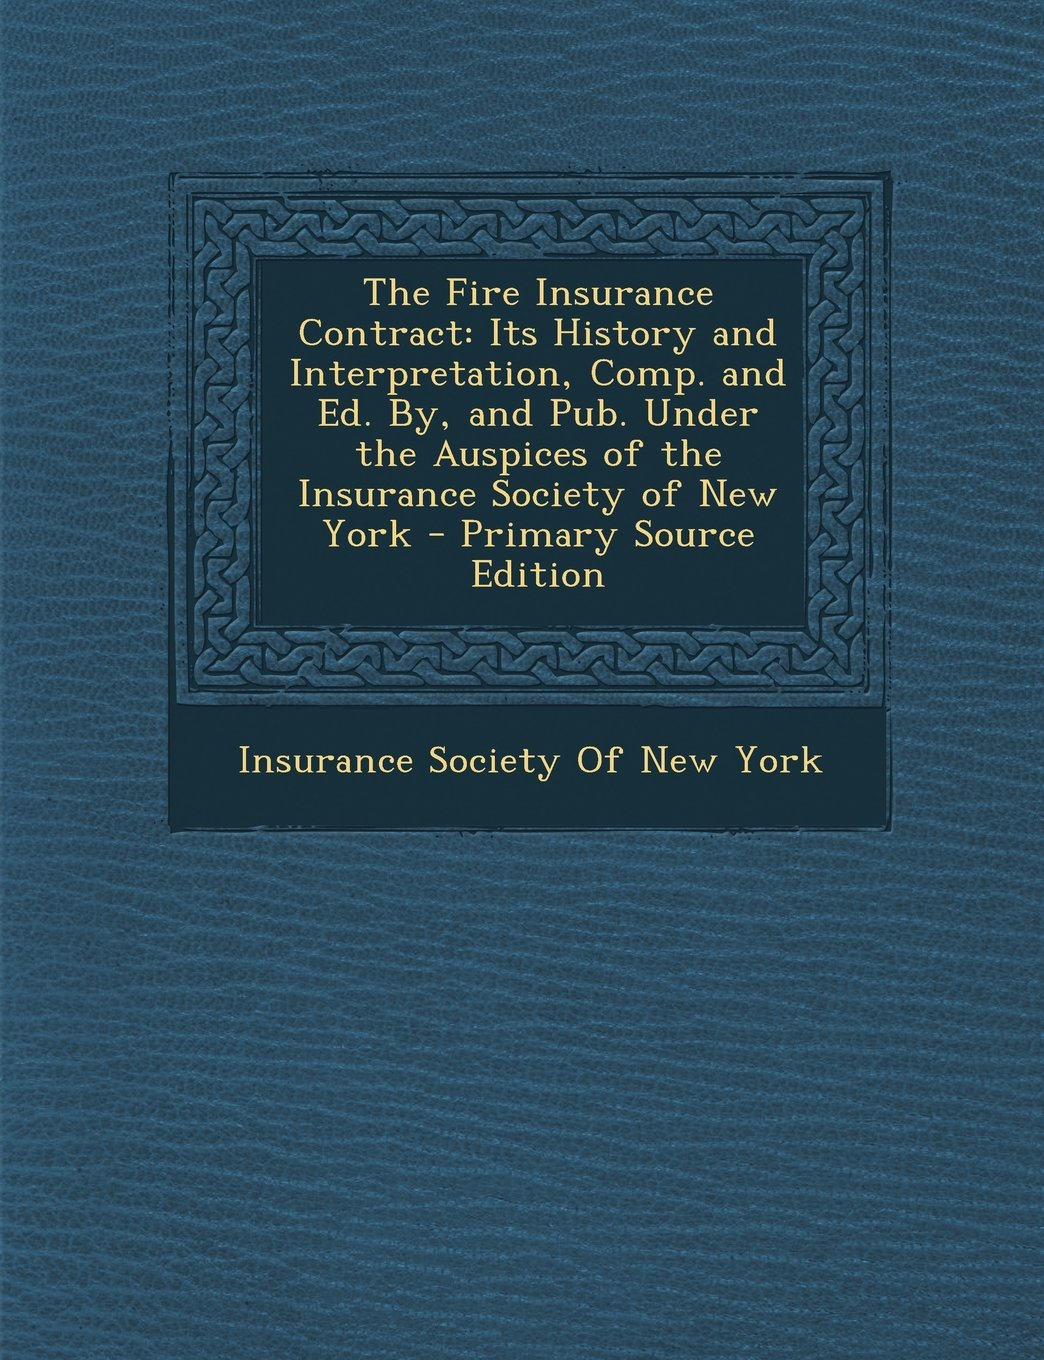 Download The Fire Insurance Contract: Its History and Interpretation, Comp. and Ed. By, and Pub. Under the Auspices of the Insurance Society of New York - P pdf epub